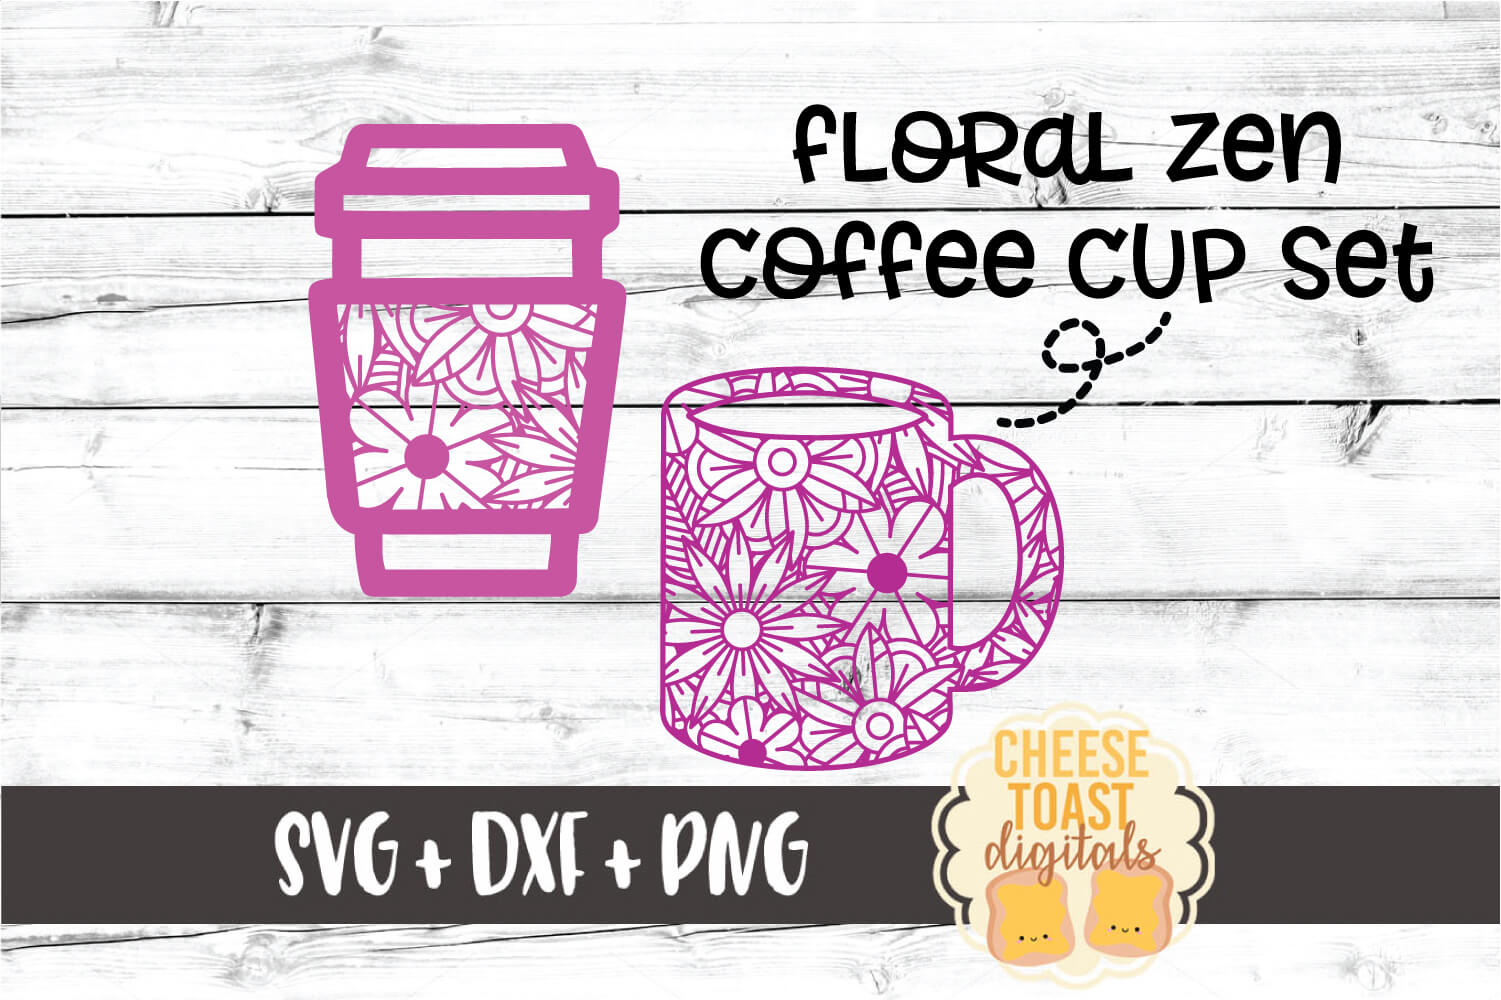 Floral Zen Coffee Cup Set - 2 Designs SVG PNG DXF Cut Files example image 1